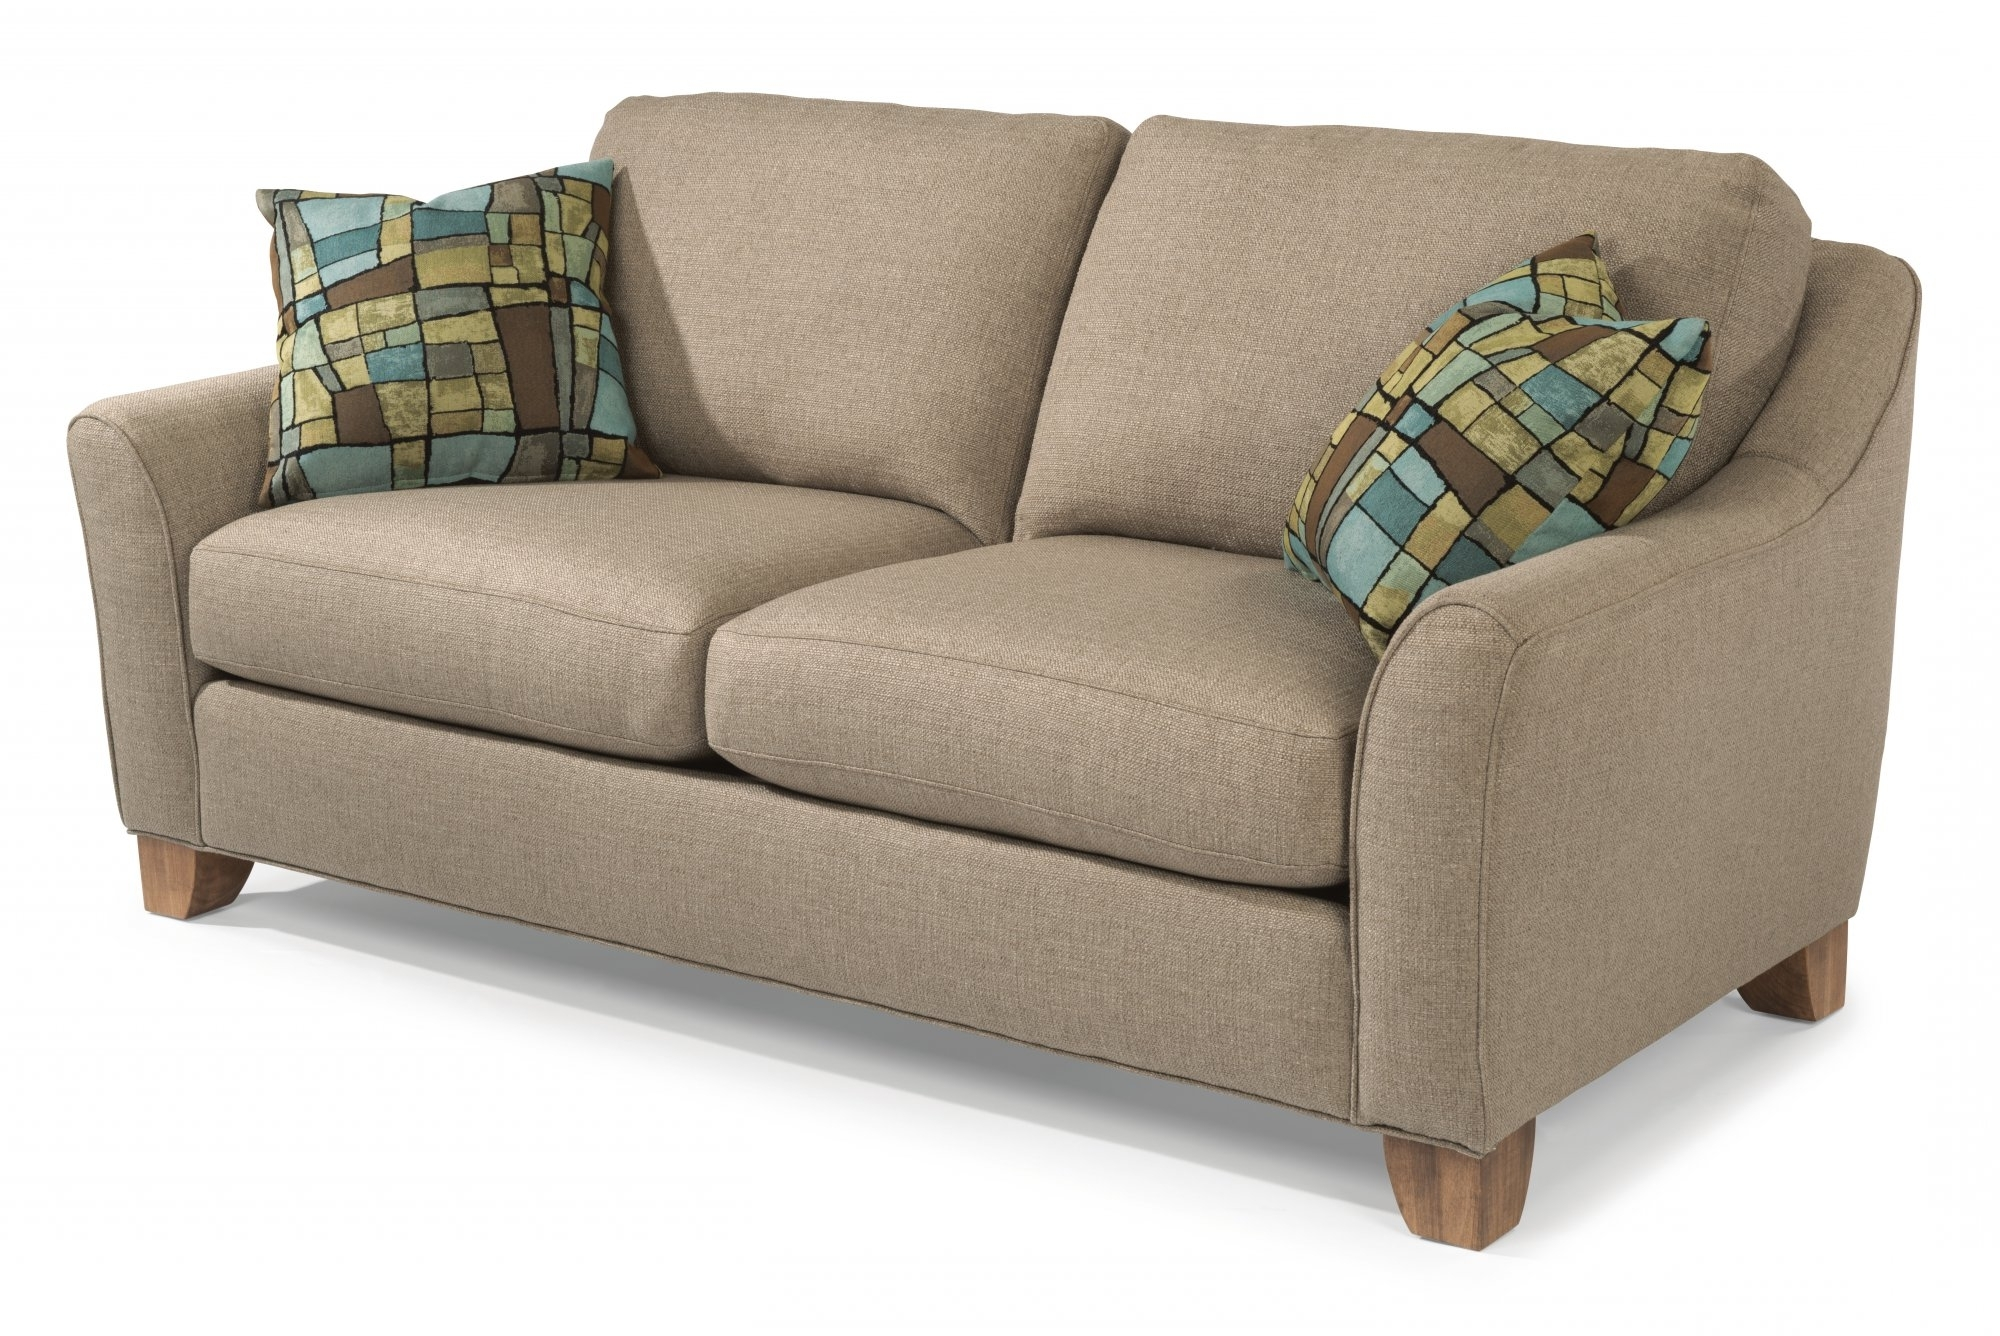 sofaair a half halftwin and pin sleeper davis products sofa chair twin